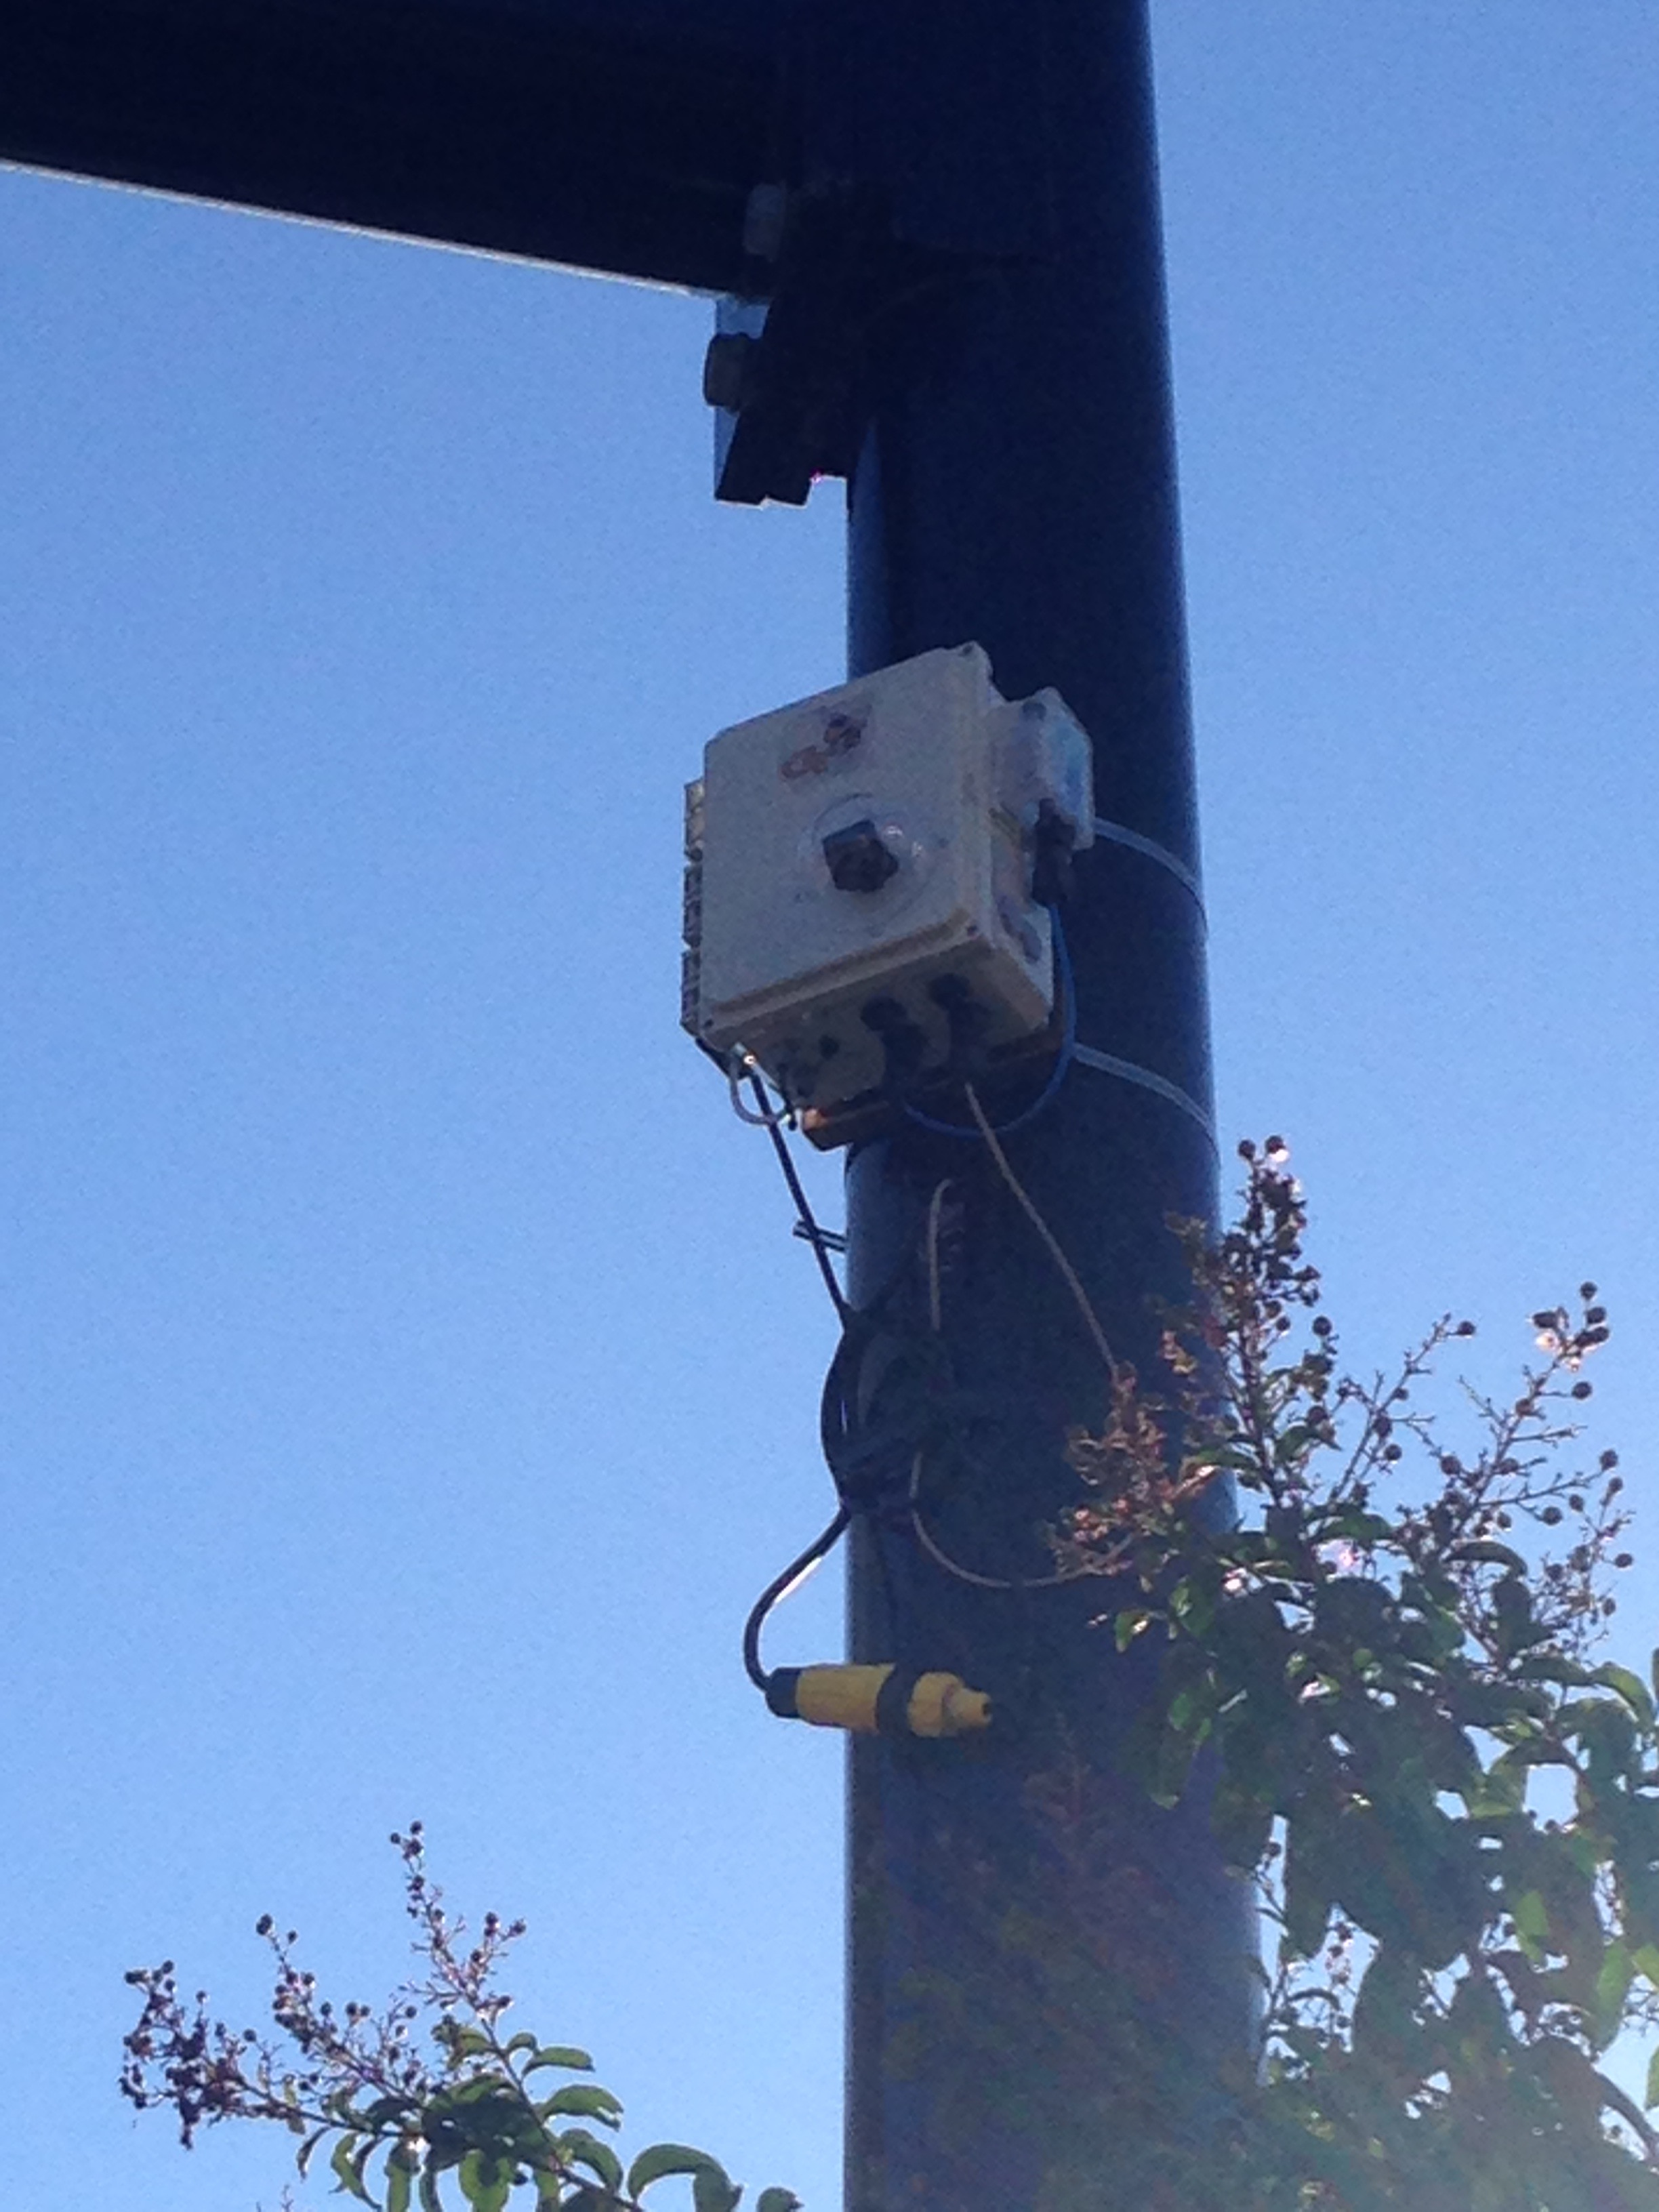 One of the sensor boxes installed along North Avenue